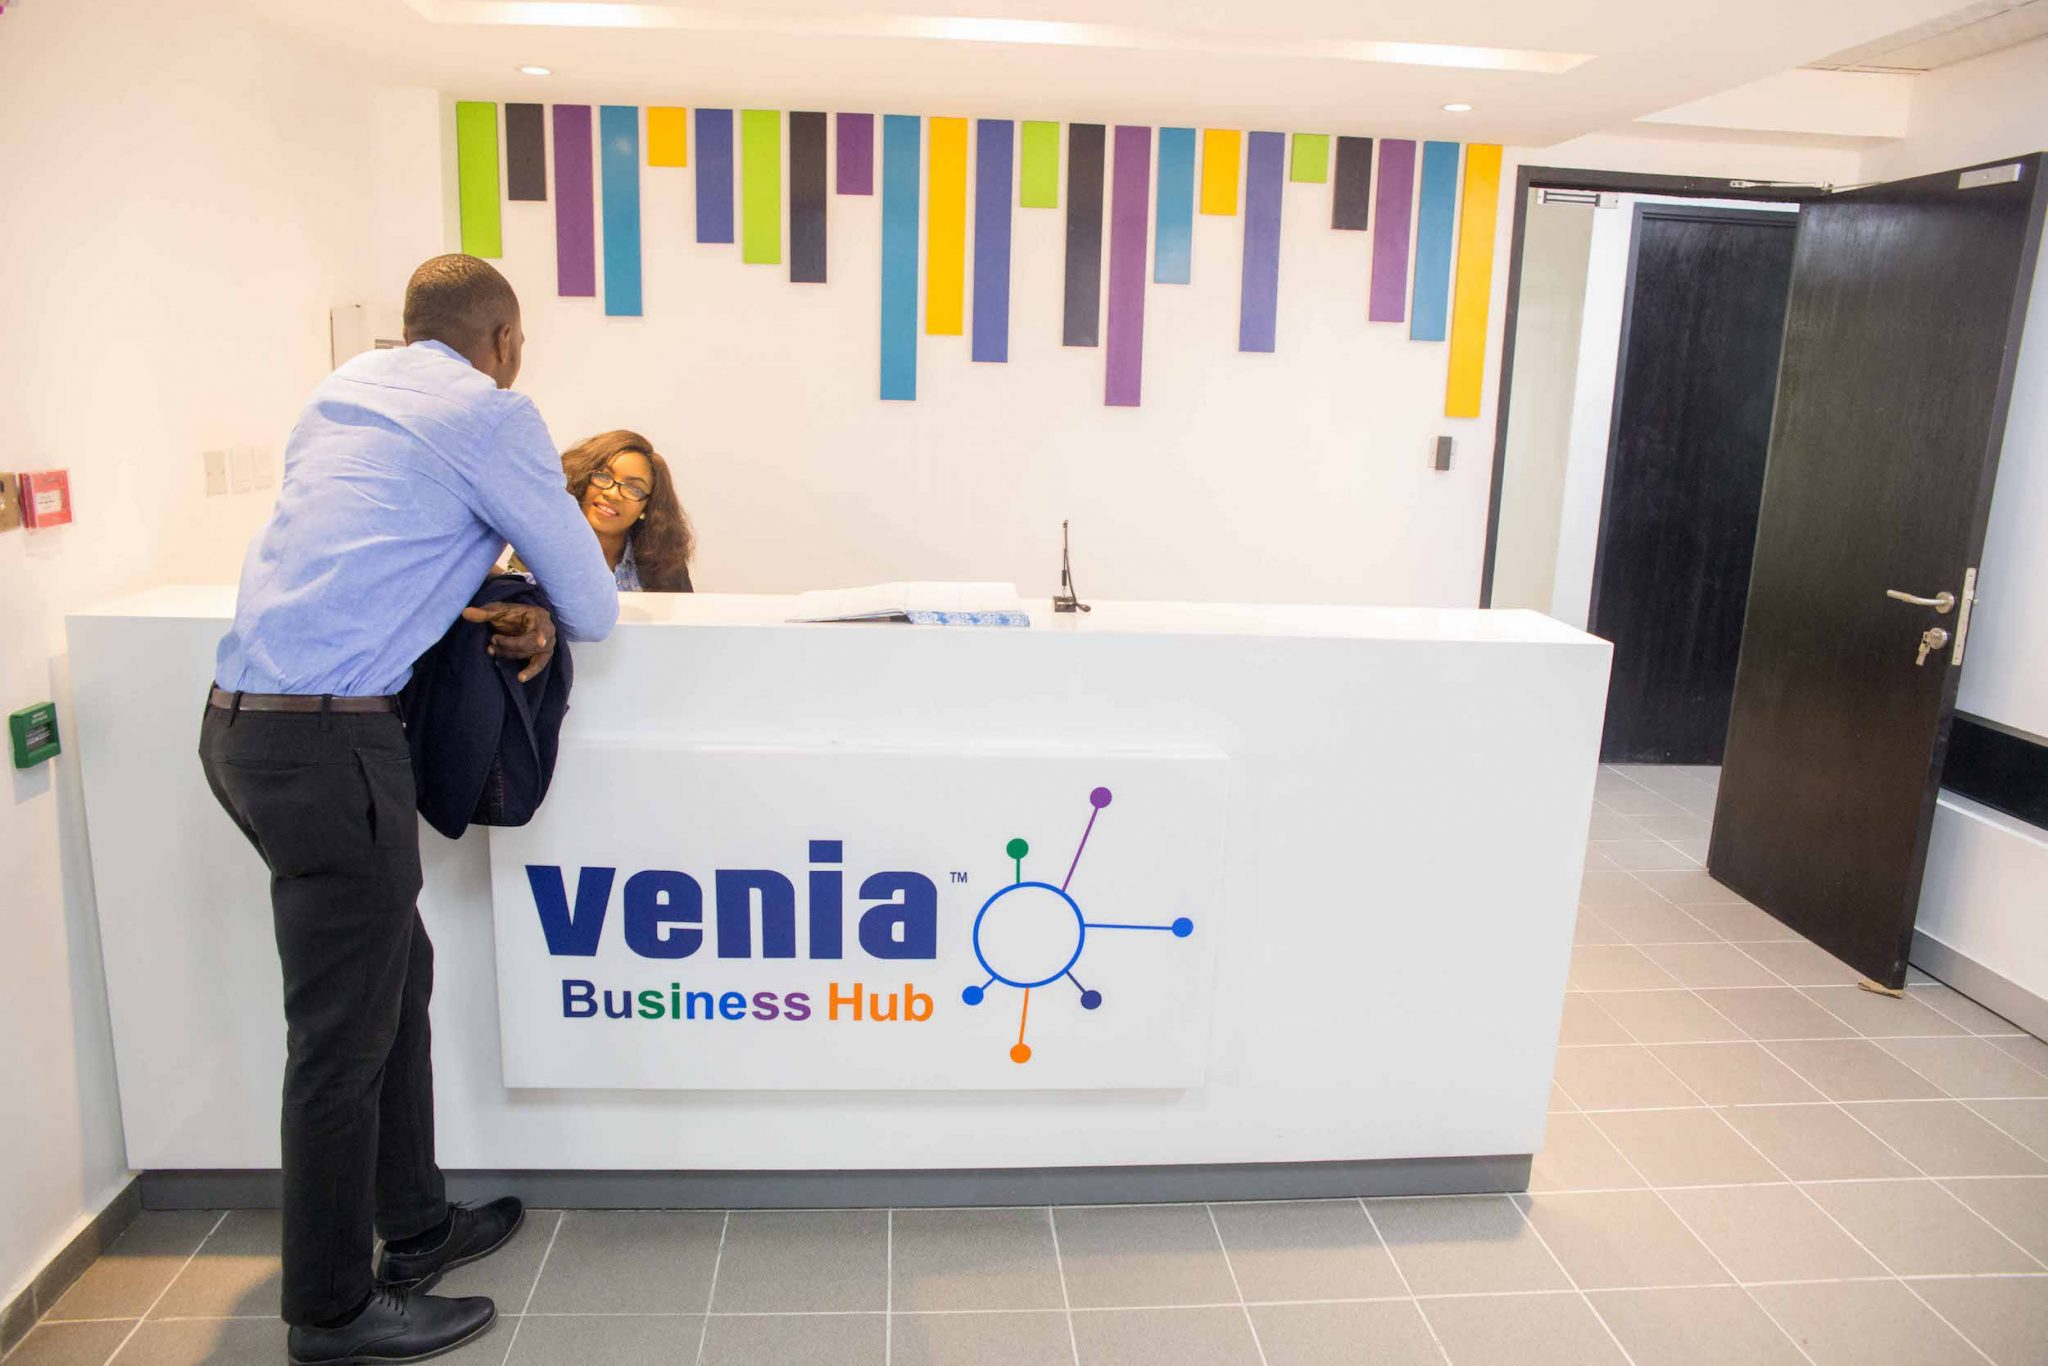 Welcome to Venia Business Hub